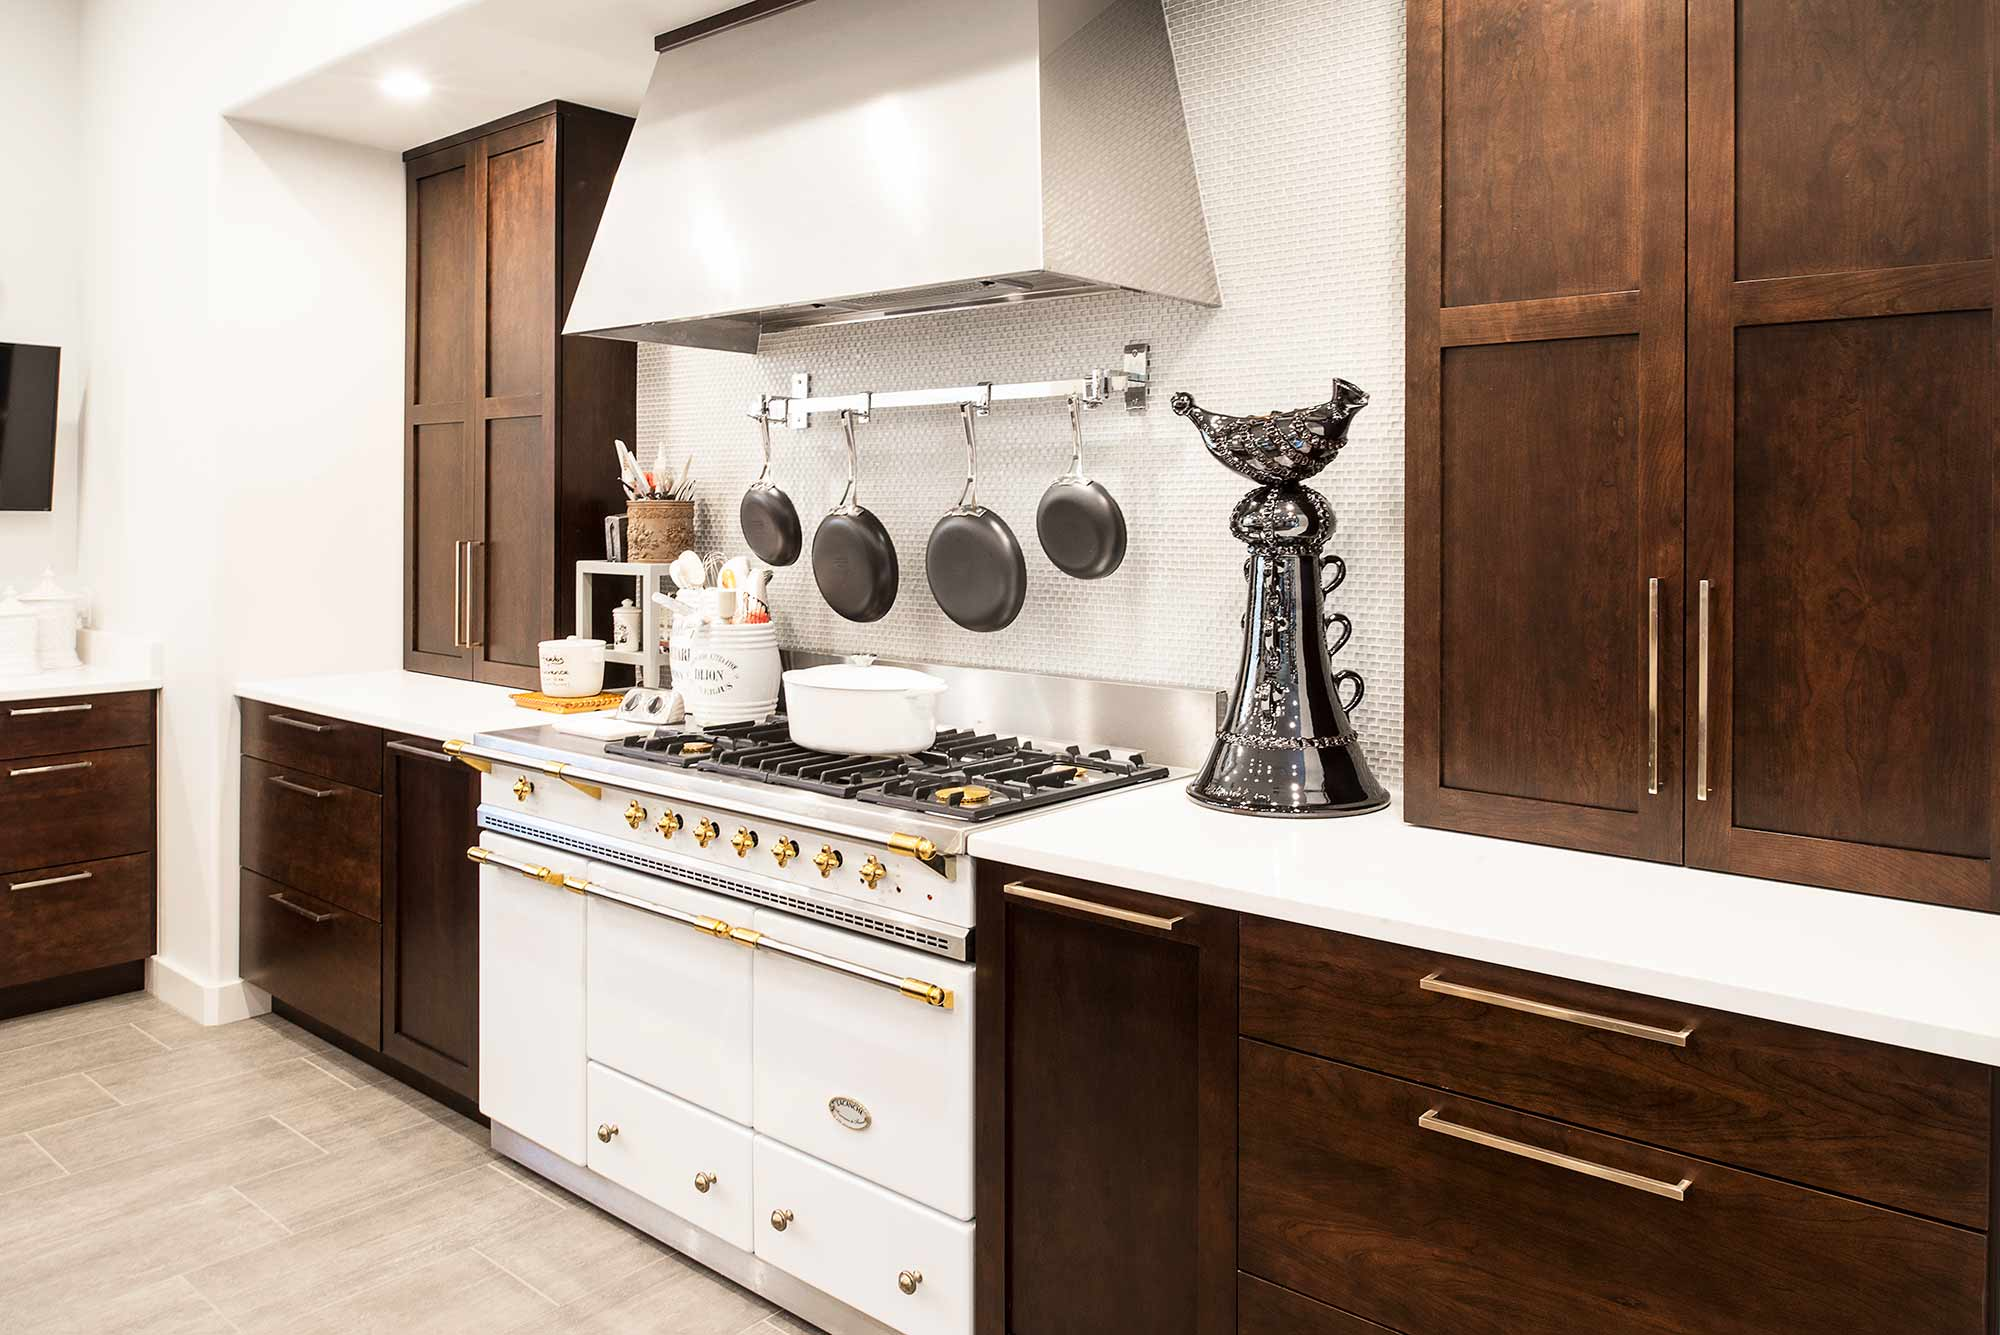 Lacanche french gas range in Tulsa kitchen remodel with vent hood rich brown cabinet storage, ceramic tile backsplash and quartz counter-top